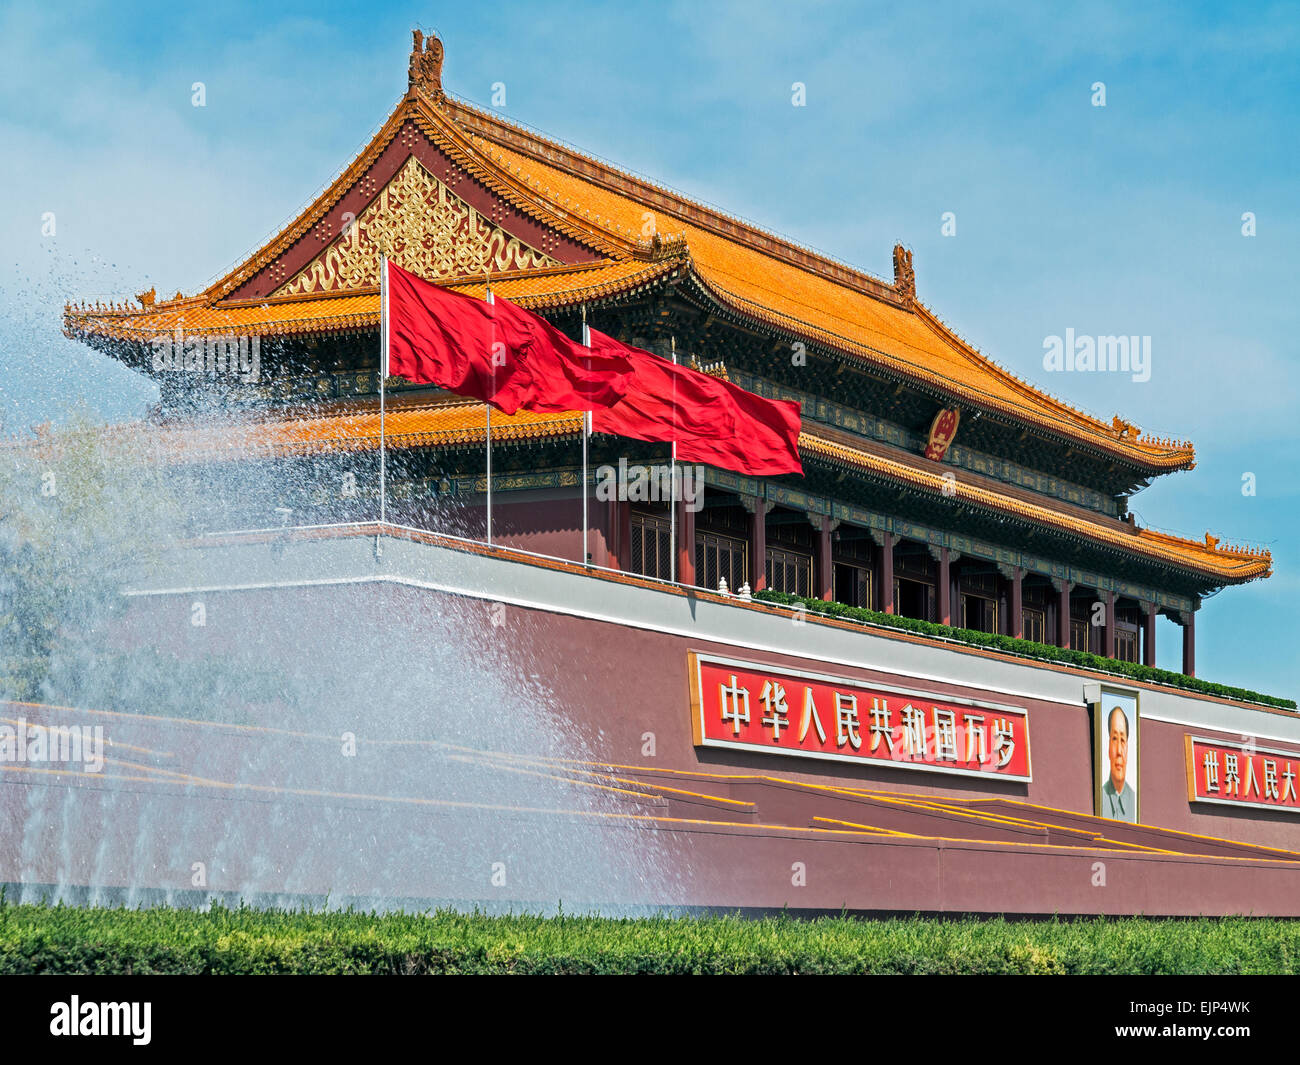 China, Beijing, Mao Zedong portrait on Gate of Heavenly Peace, Tiananmen Square - Stock Image